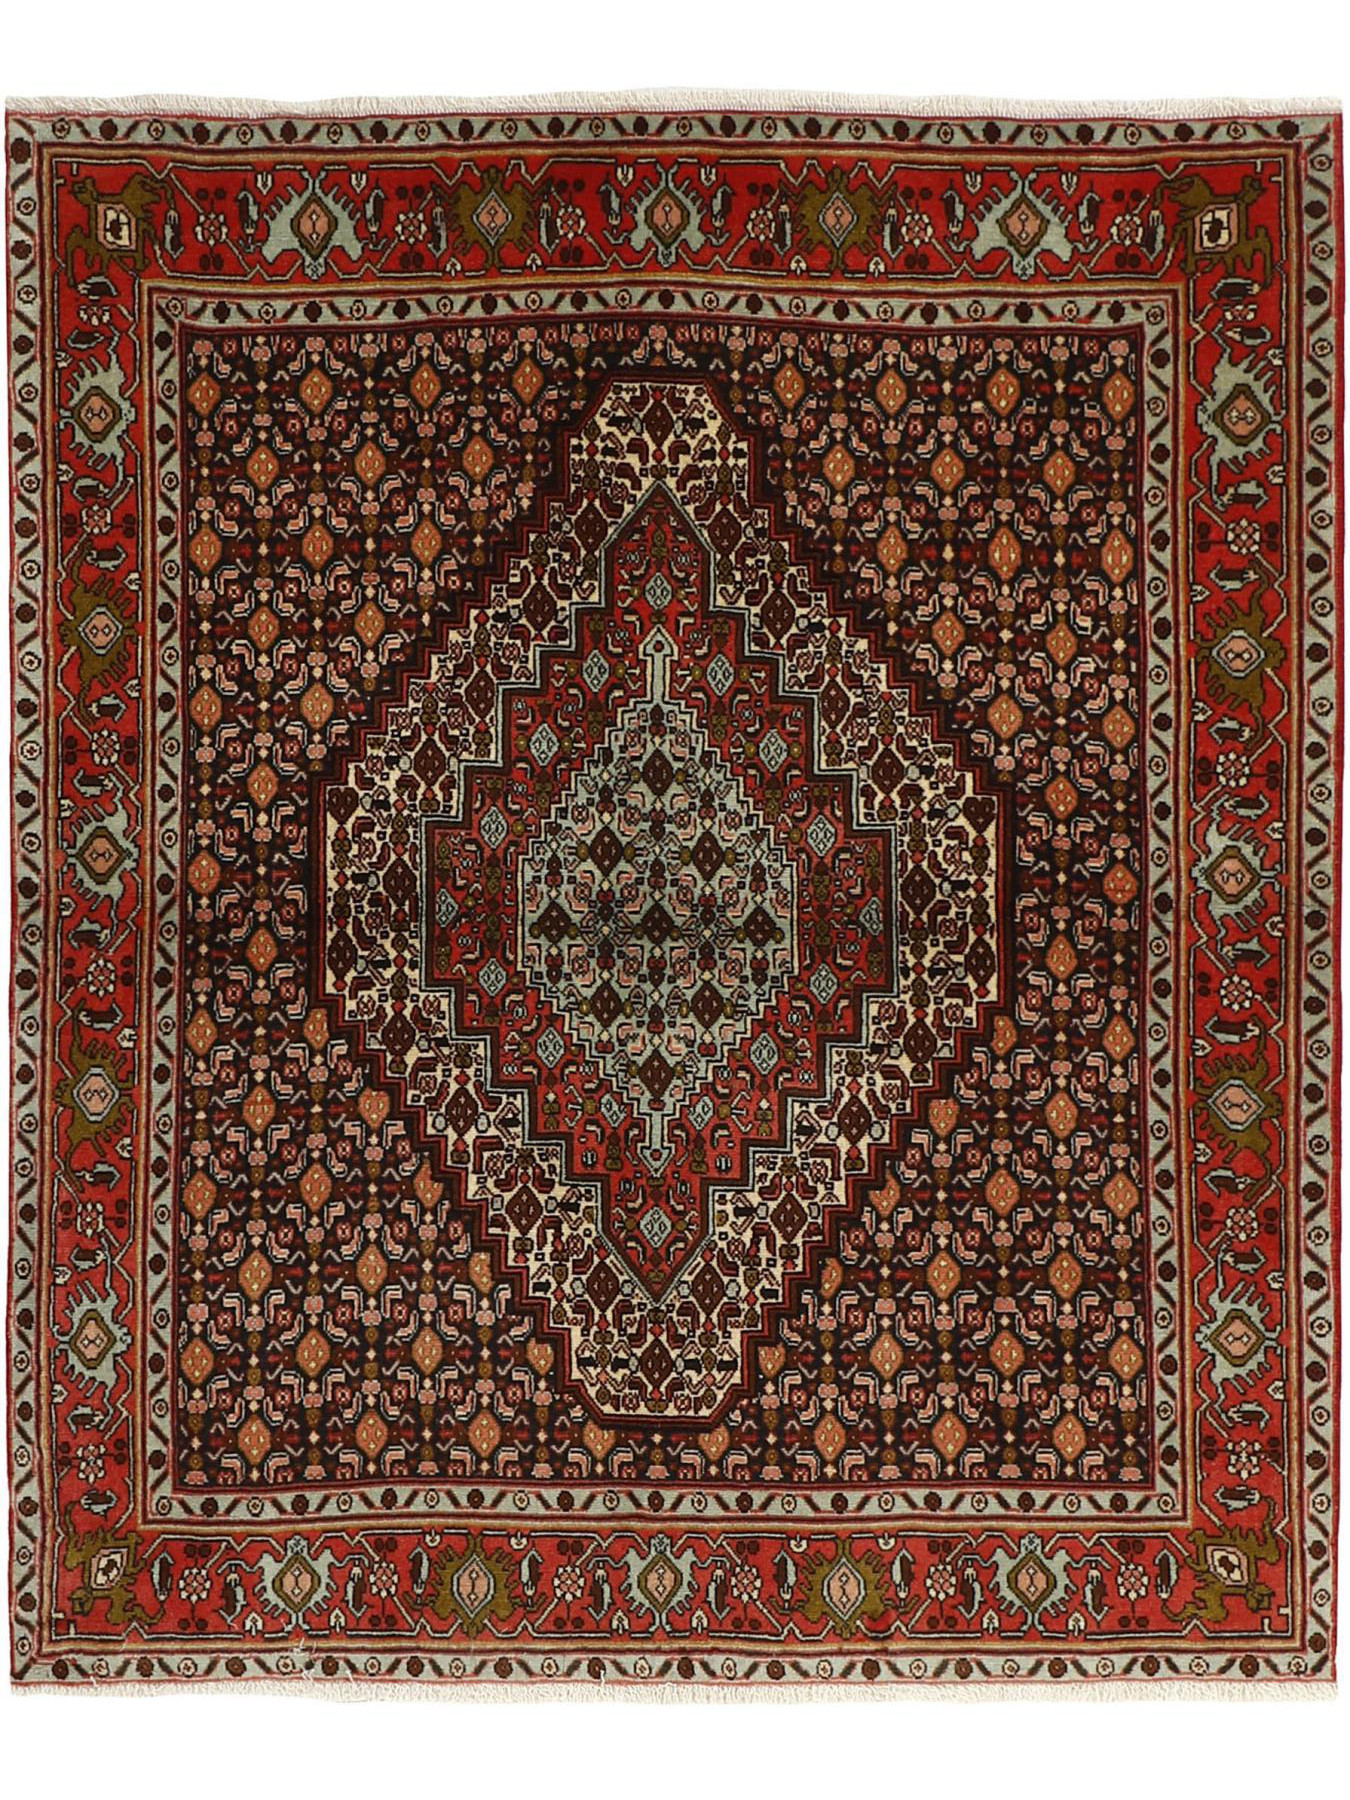 Persian carpets - Senneh